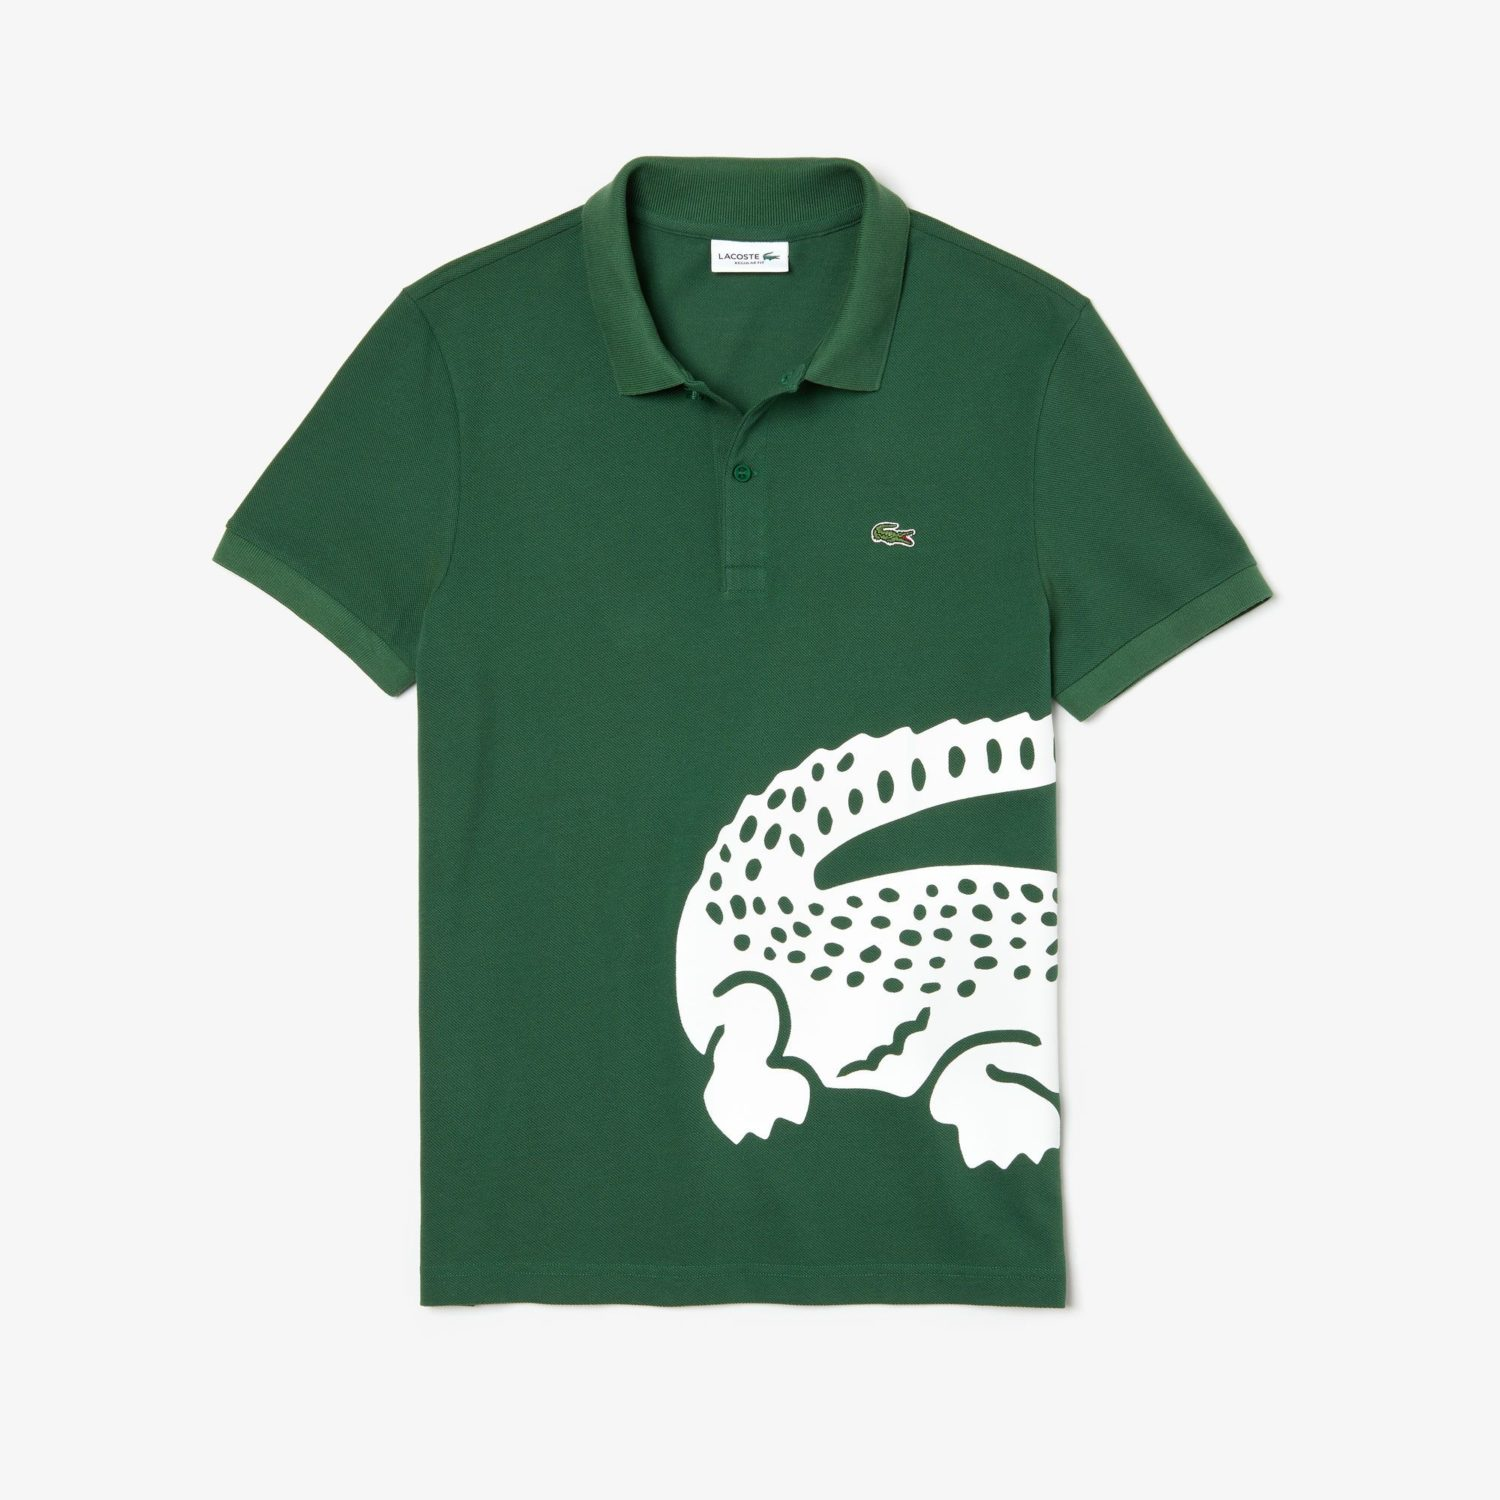 ao-polo-lacoste-regular-fit-216